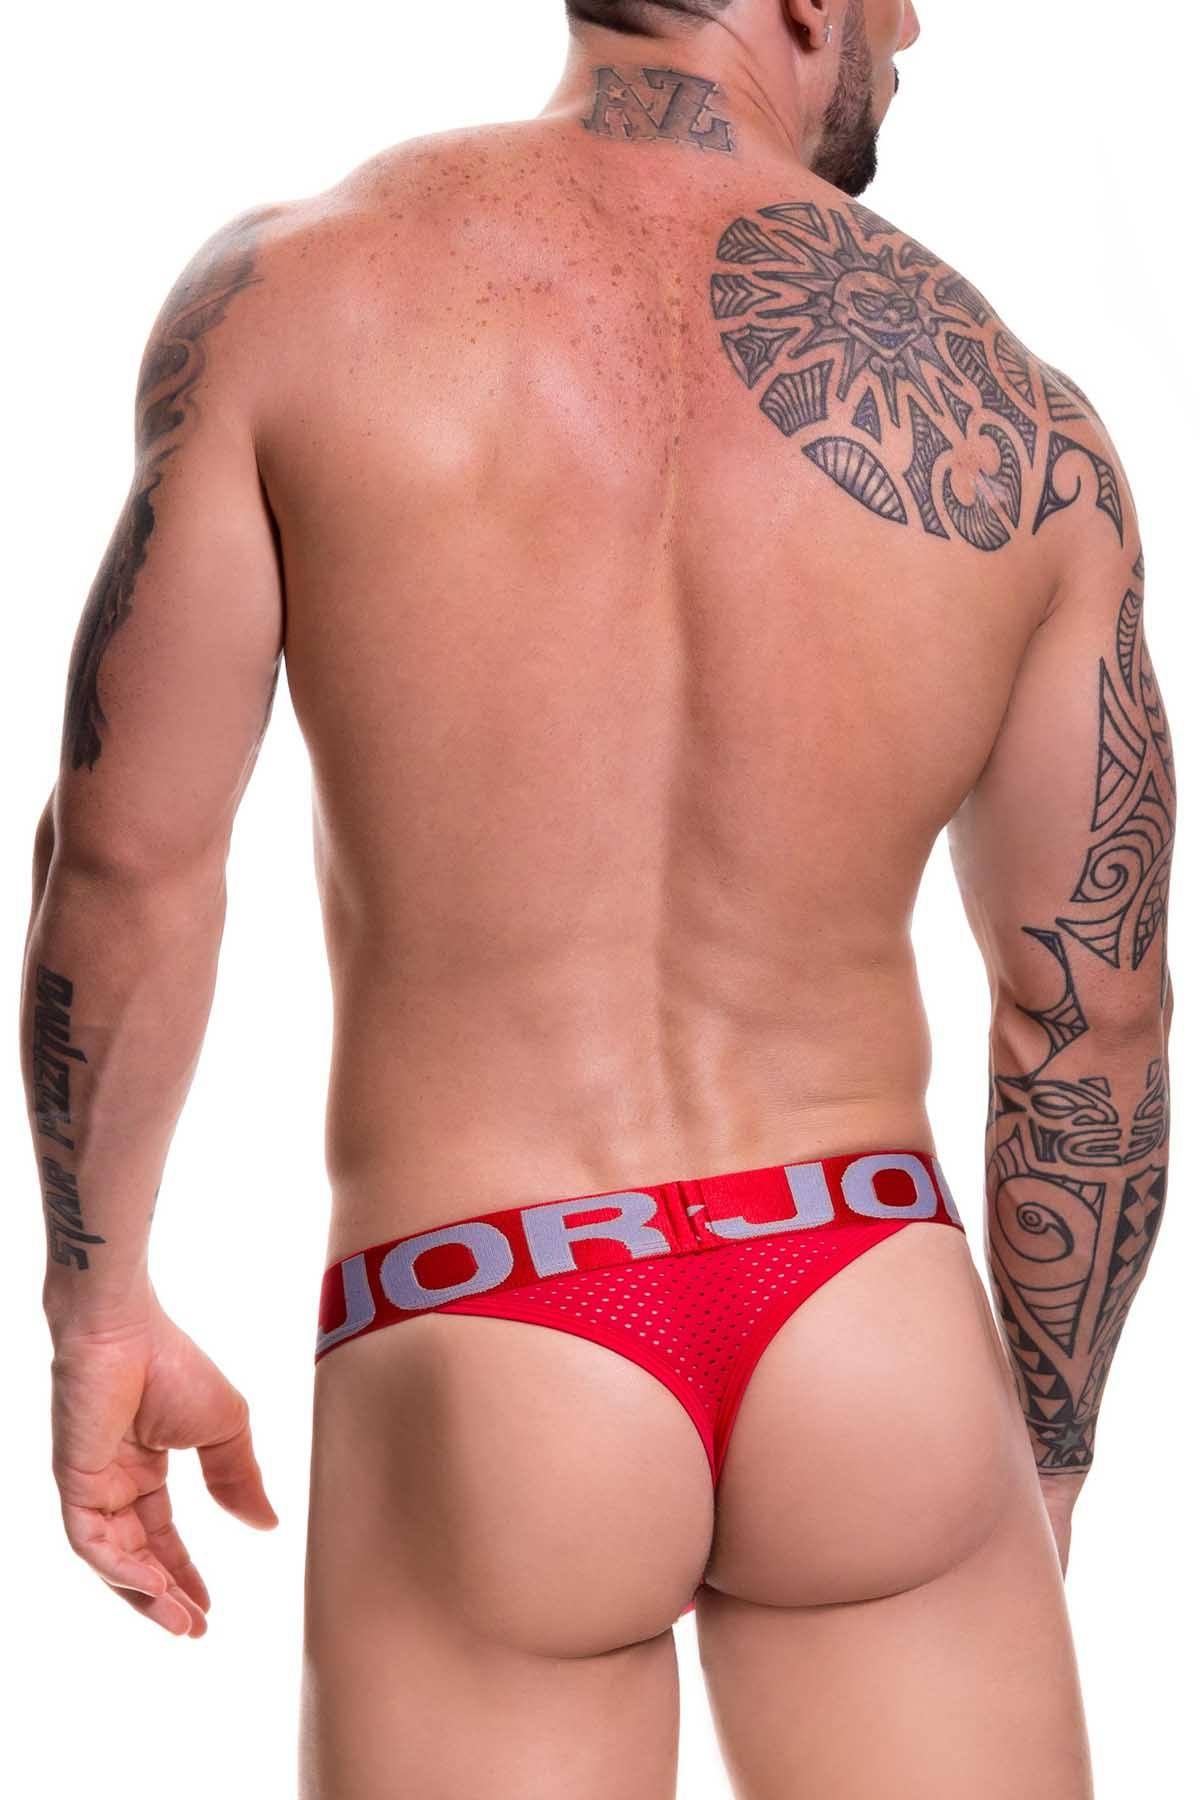 Jor Red Royalty Thong